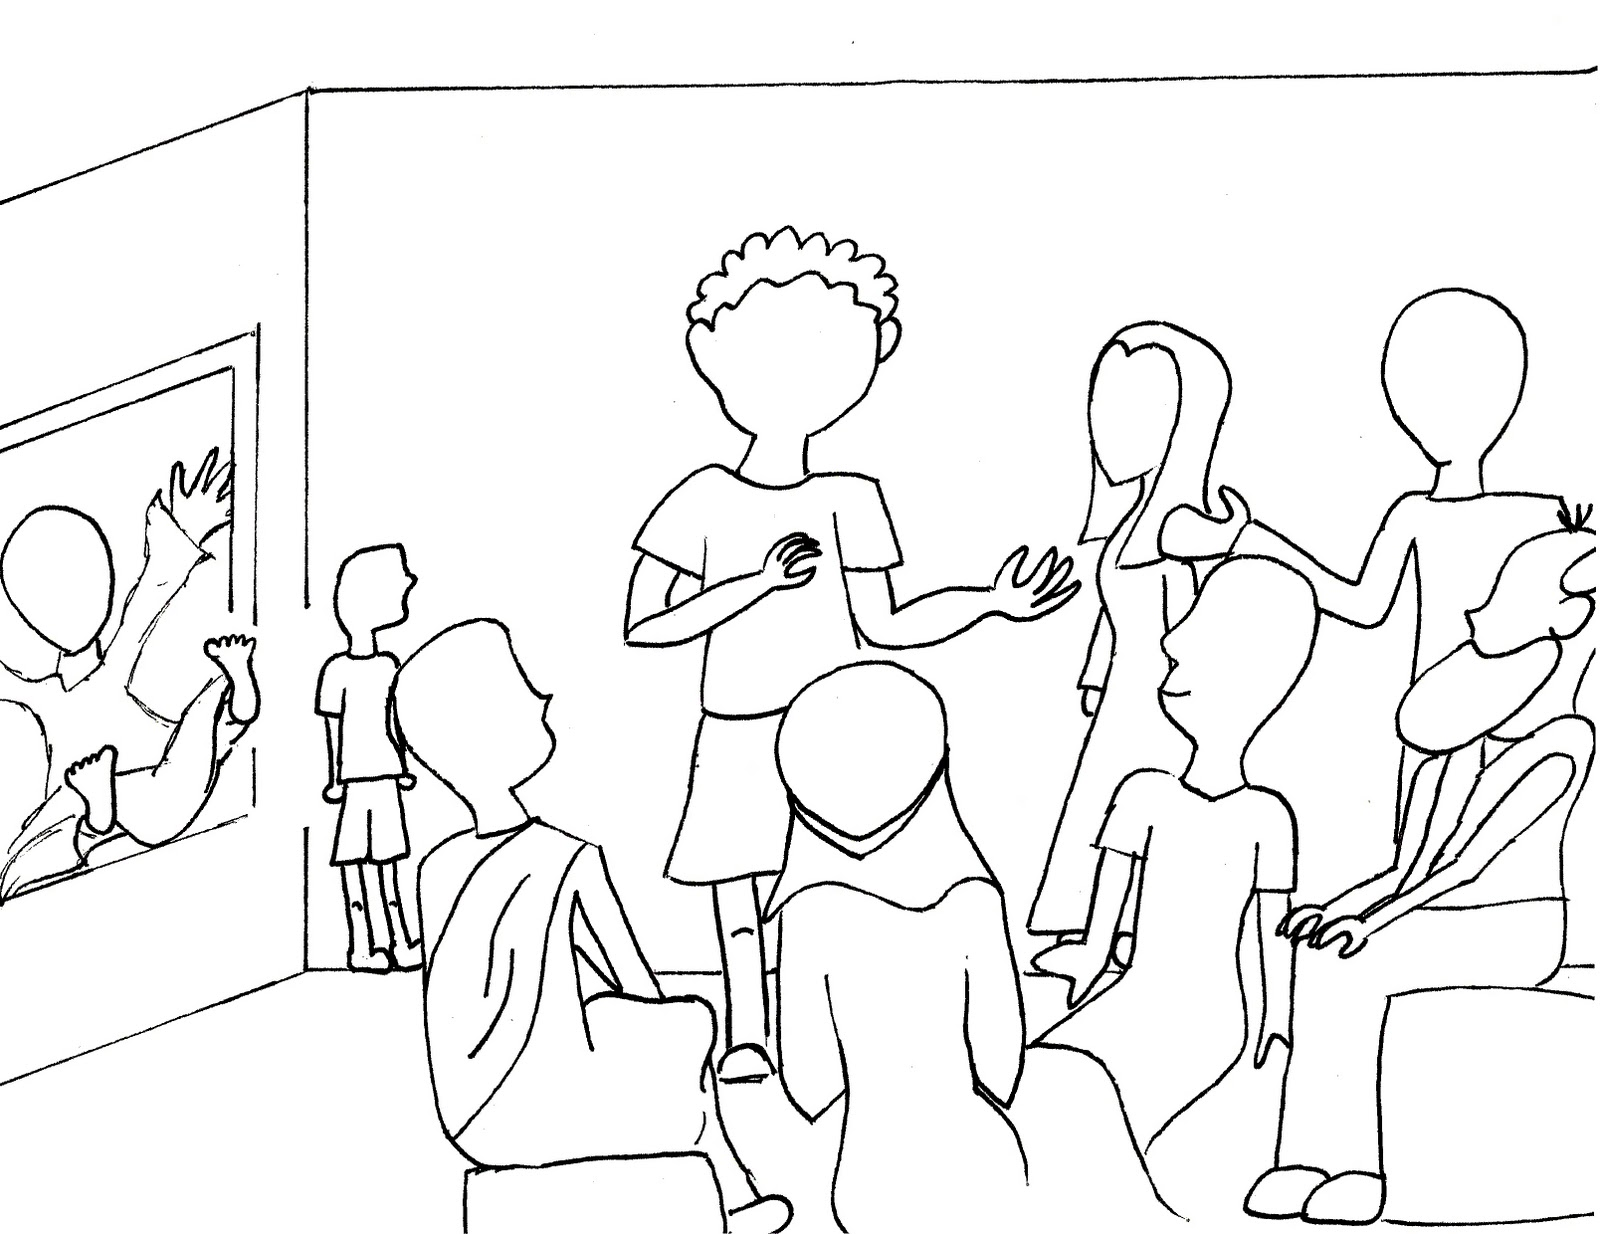 acts 20 coloring pages - photo#1